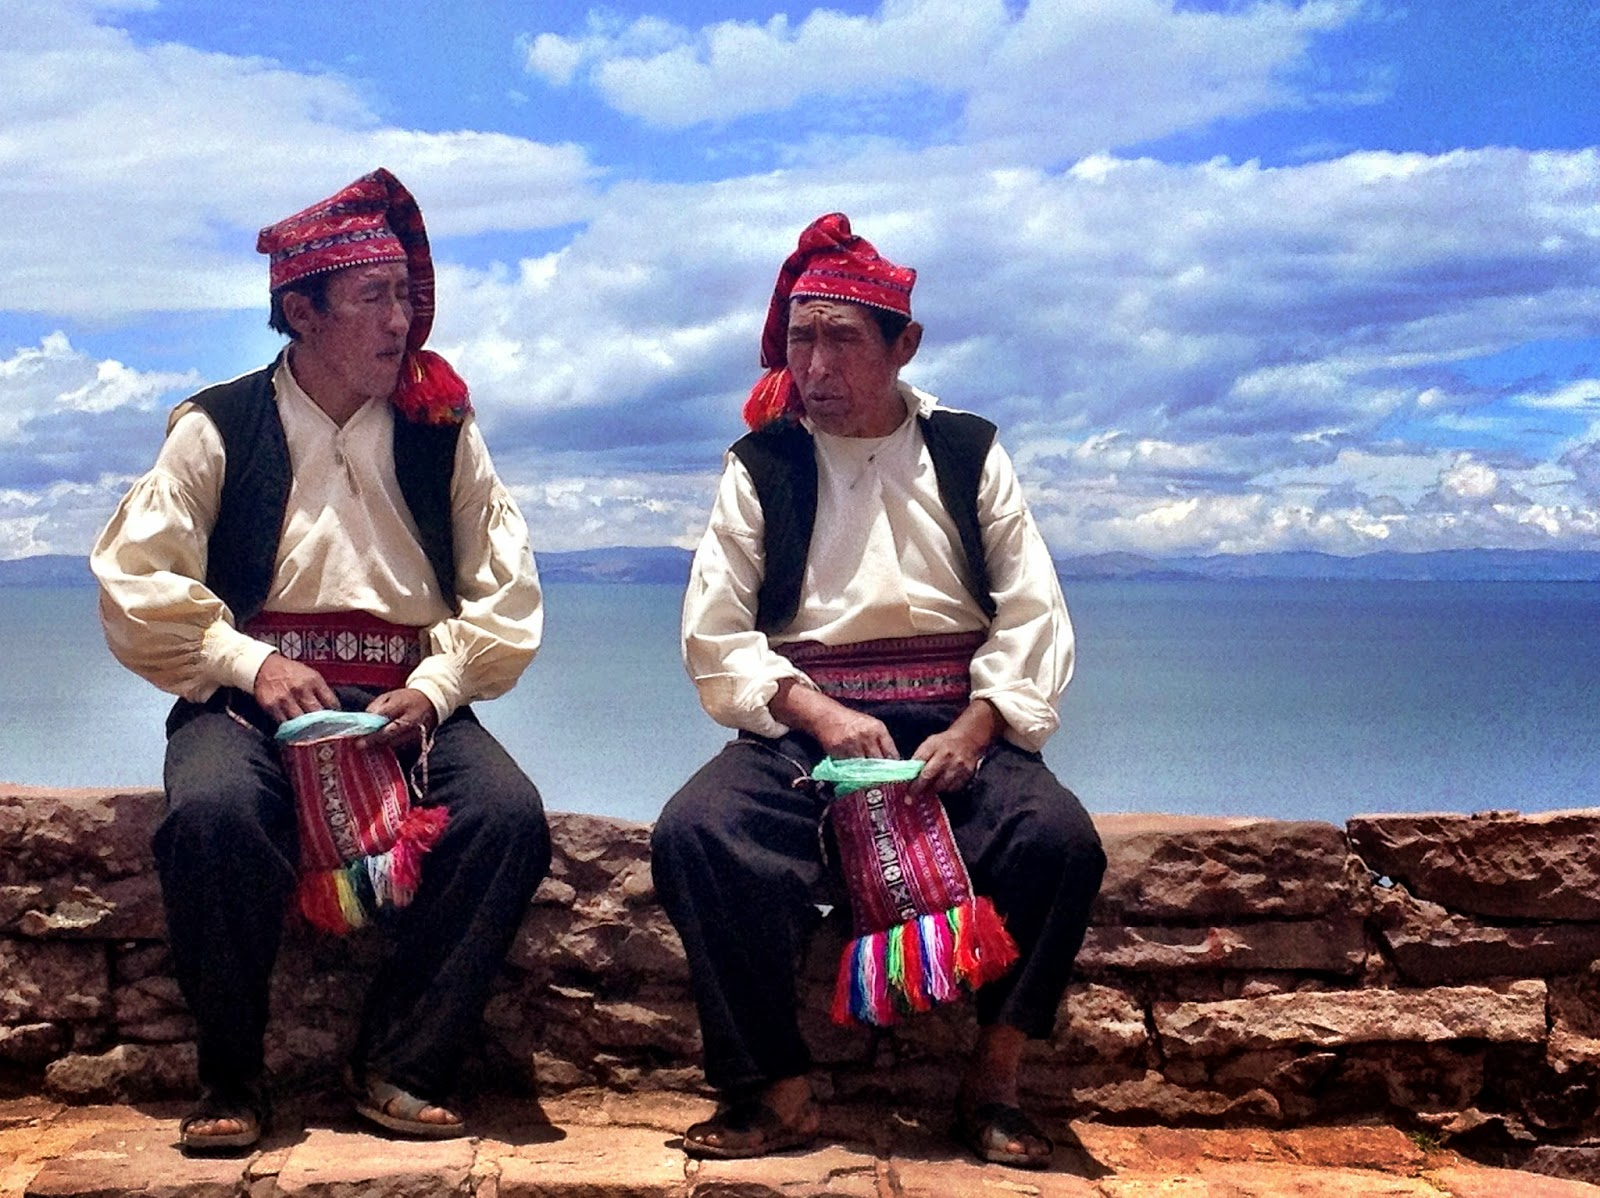 Taquileños men and their colourful woollen hats - Taquile Island